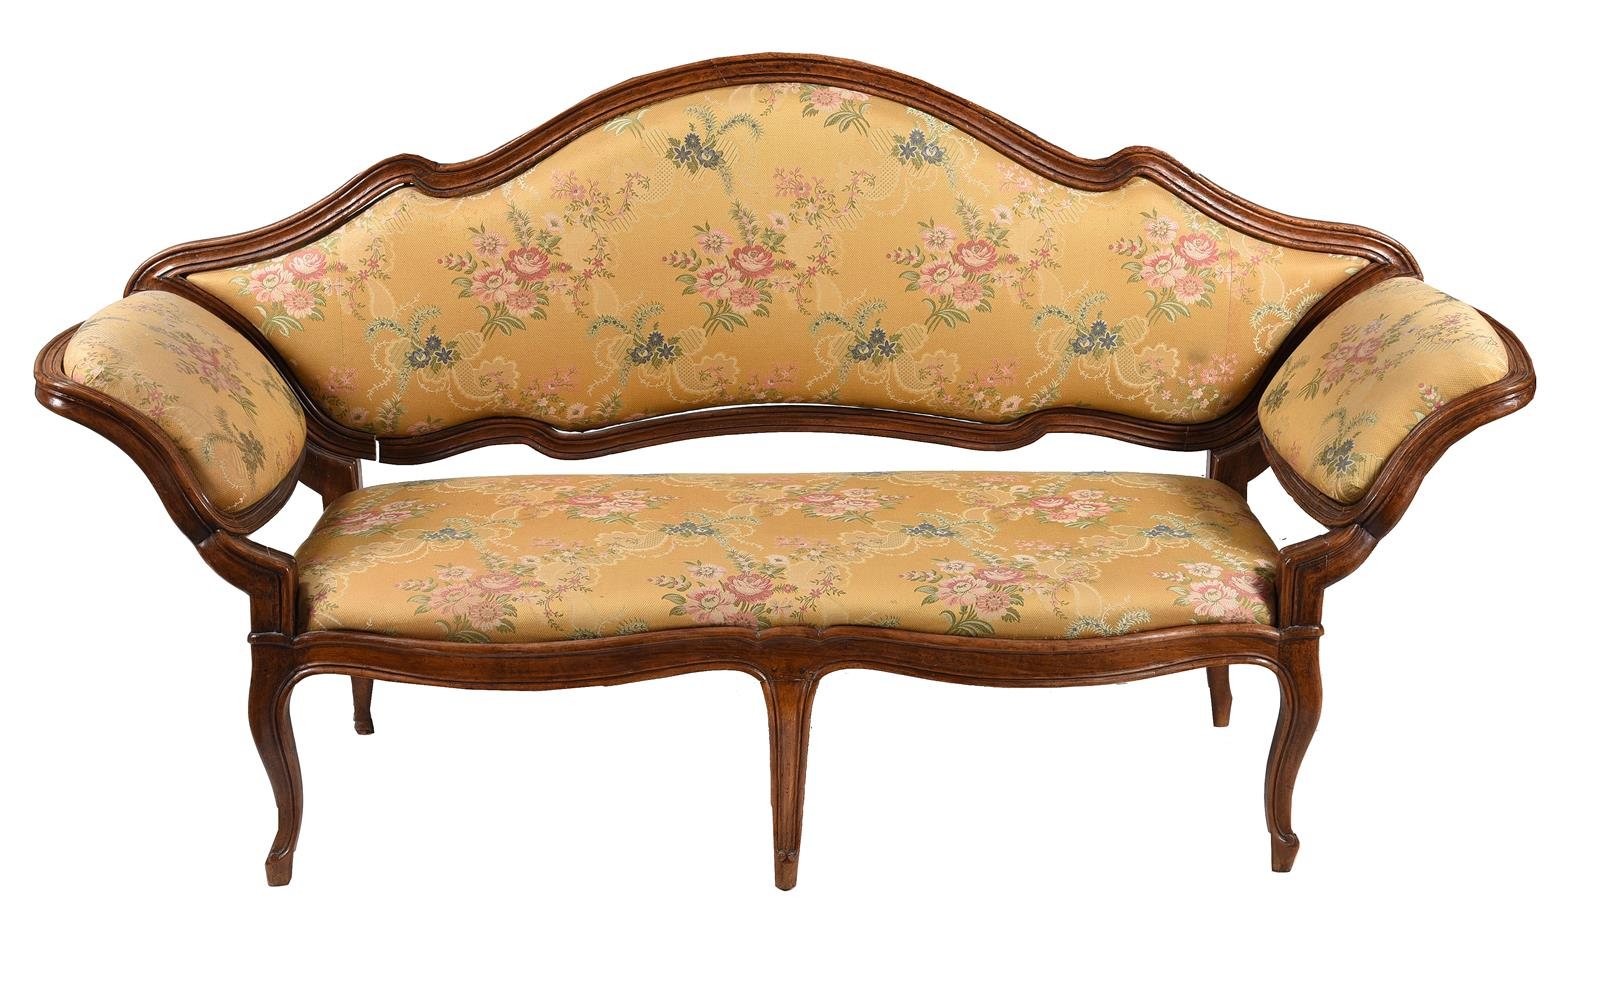 A Continental walnut and upholstered sofa